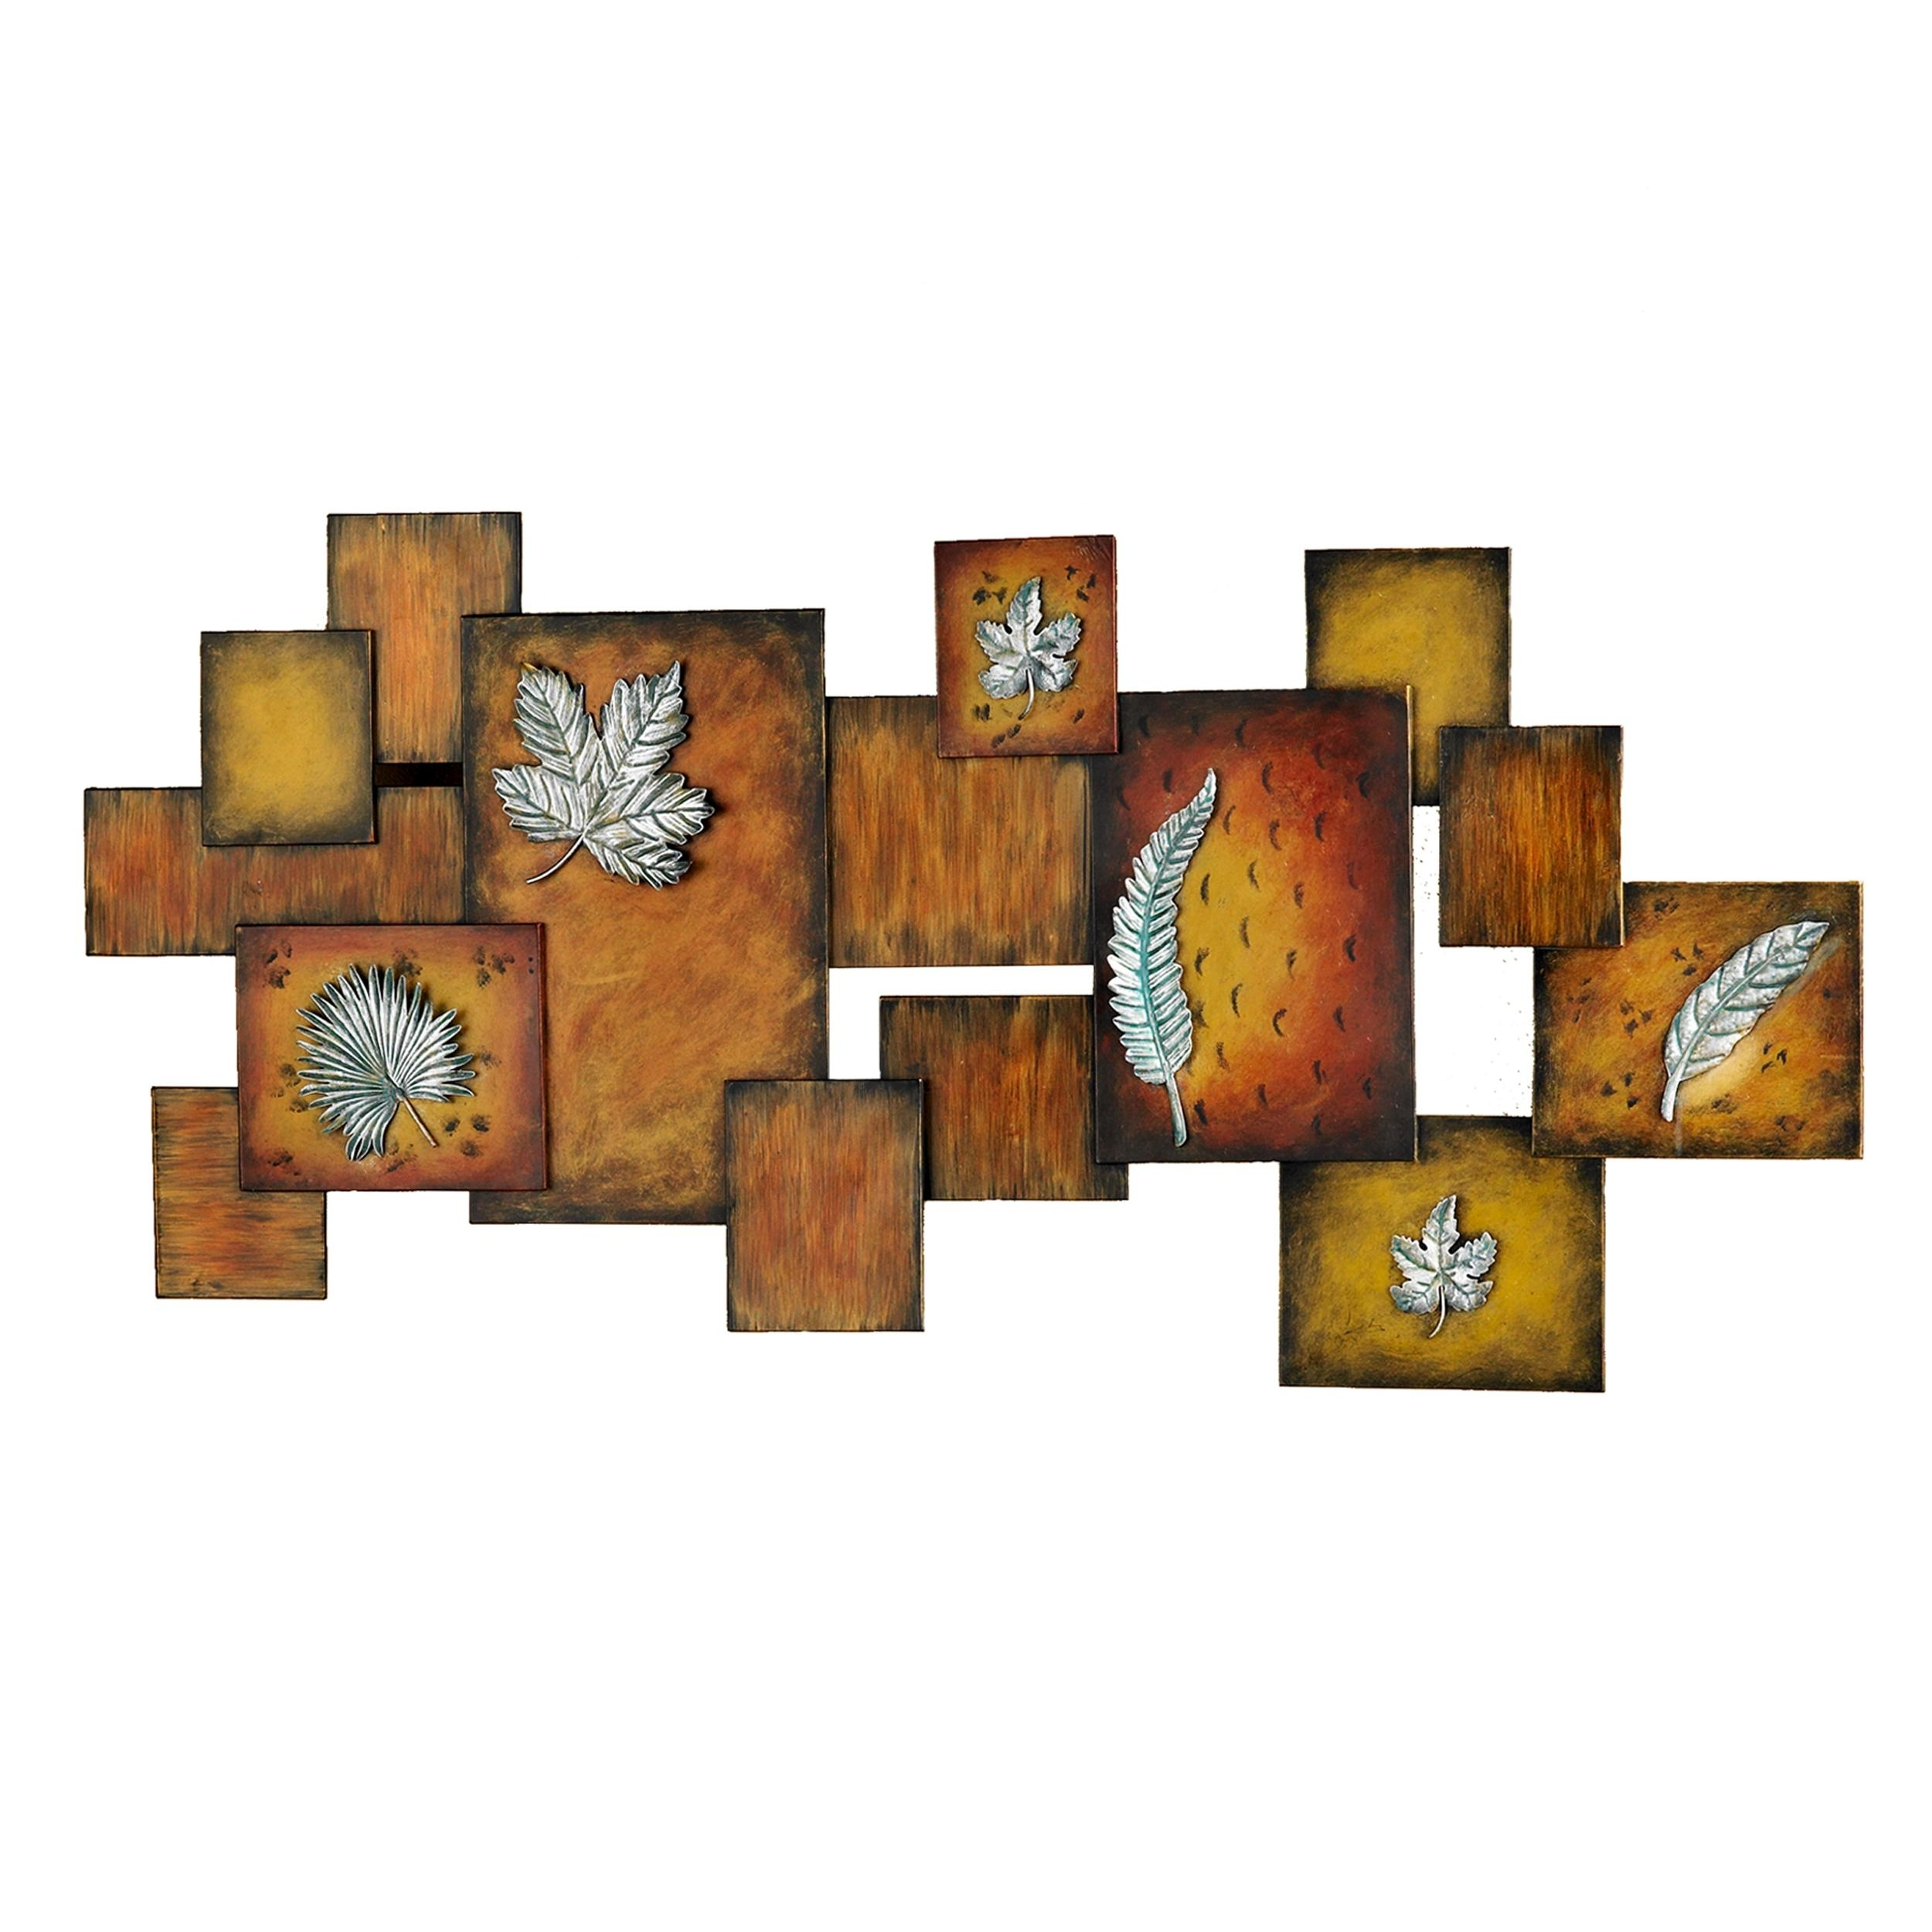 Wall Decor : Canvas Artwork 3 Piece Art Set 3 Piece Canvas Throughout Best And Newest Earth Tones Wall Accents (View 14 of 15)